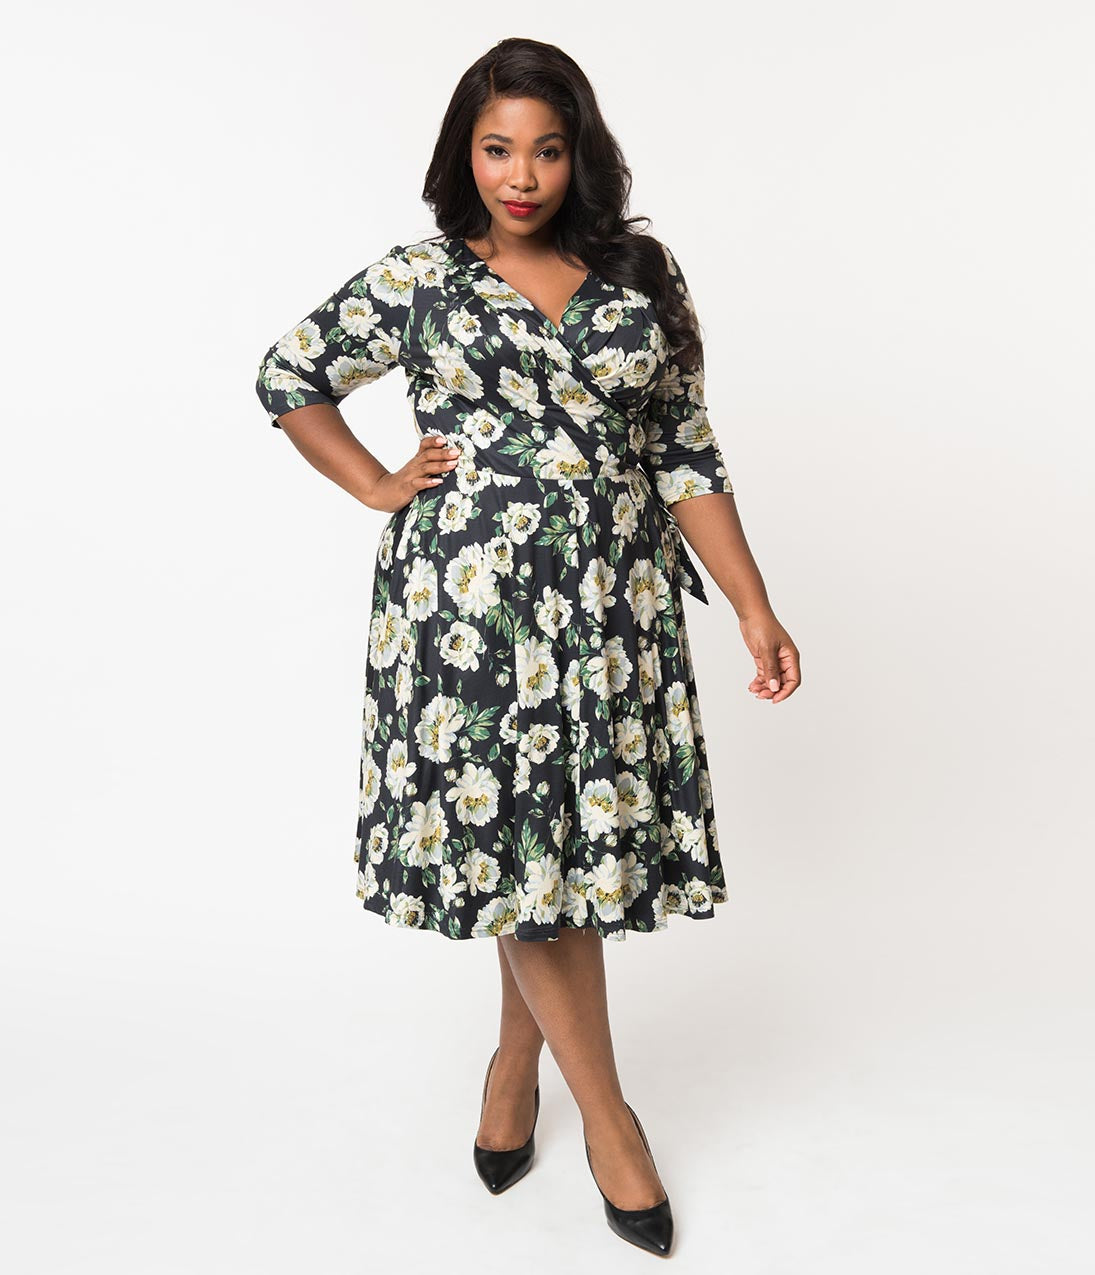 1940s Dresses | 40s Dress, Swing Dress Unique Vintage Plus Size 1940S Style Black  Ivory Floral Print Kelsie Wrap Dress $98.00 AT vintagedancer.com